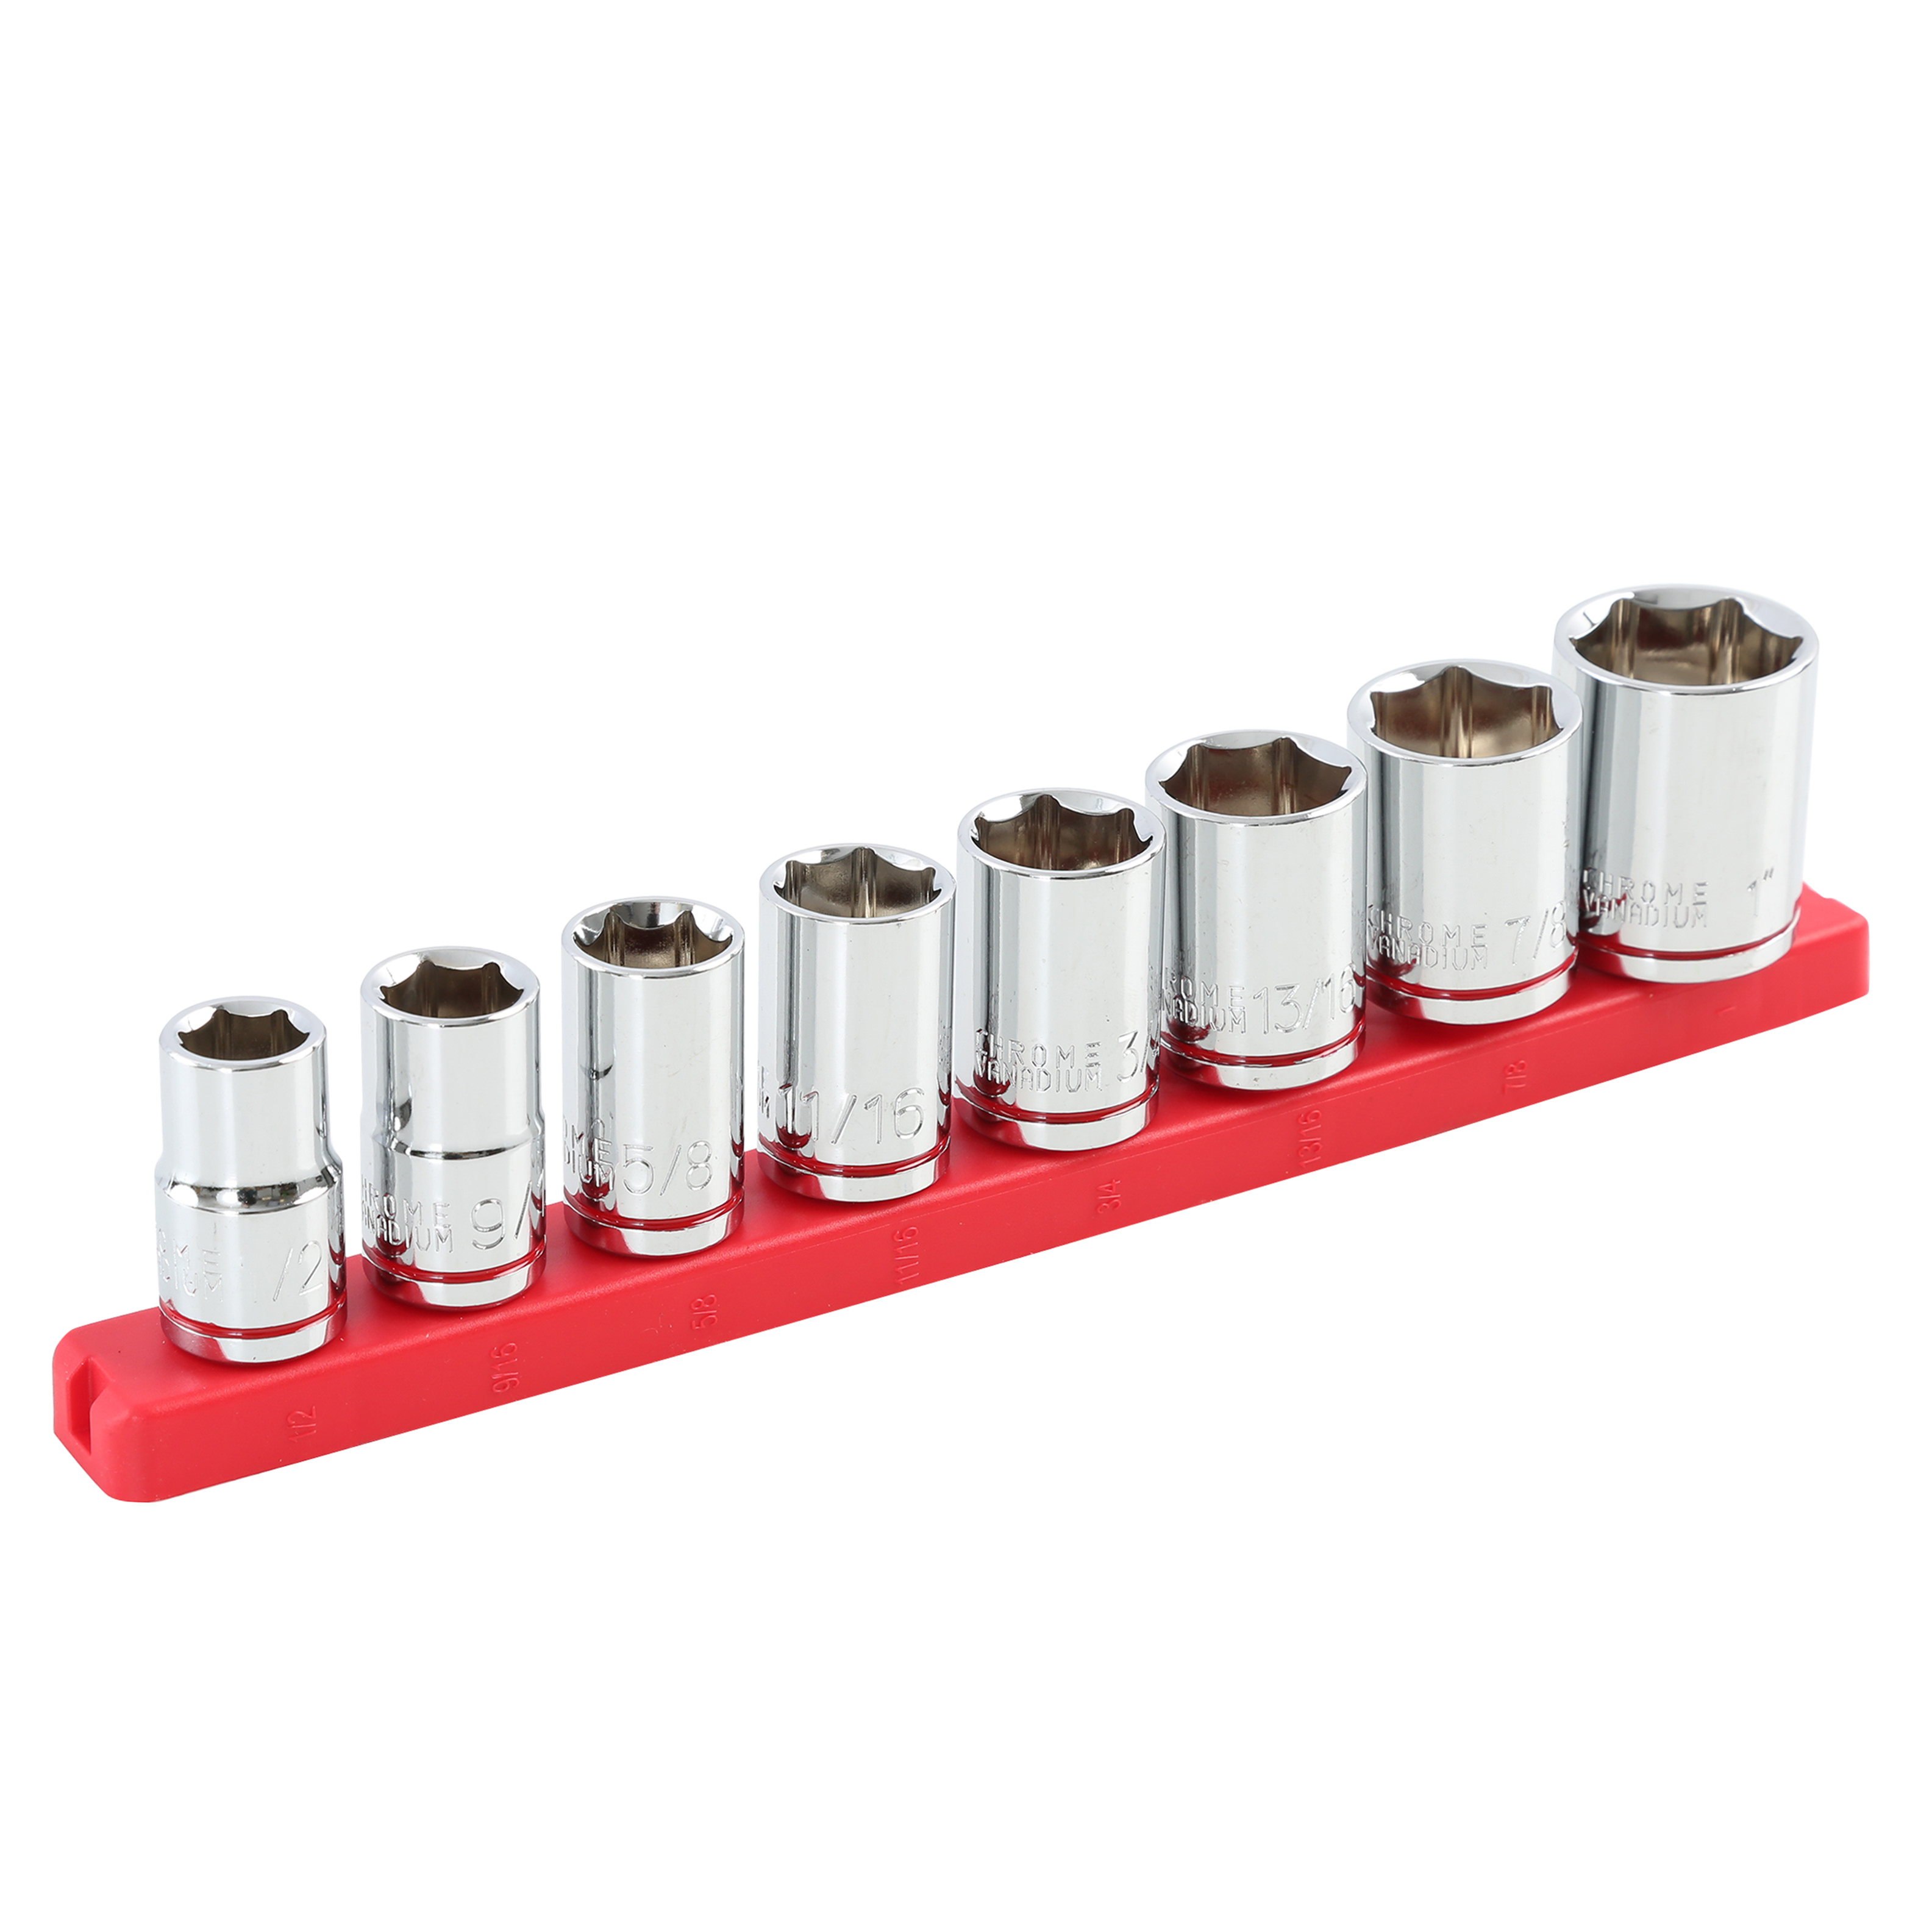 Hyper Tough 9-Piece 1/2-Inch Drive SAE Socket Set